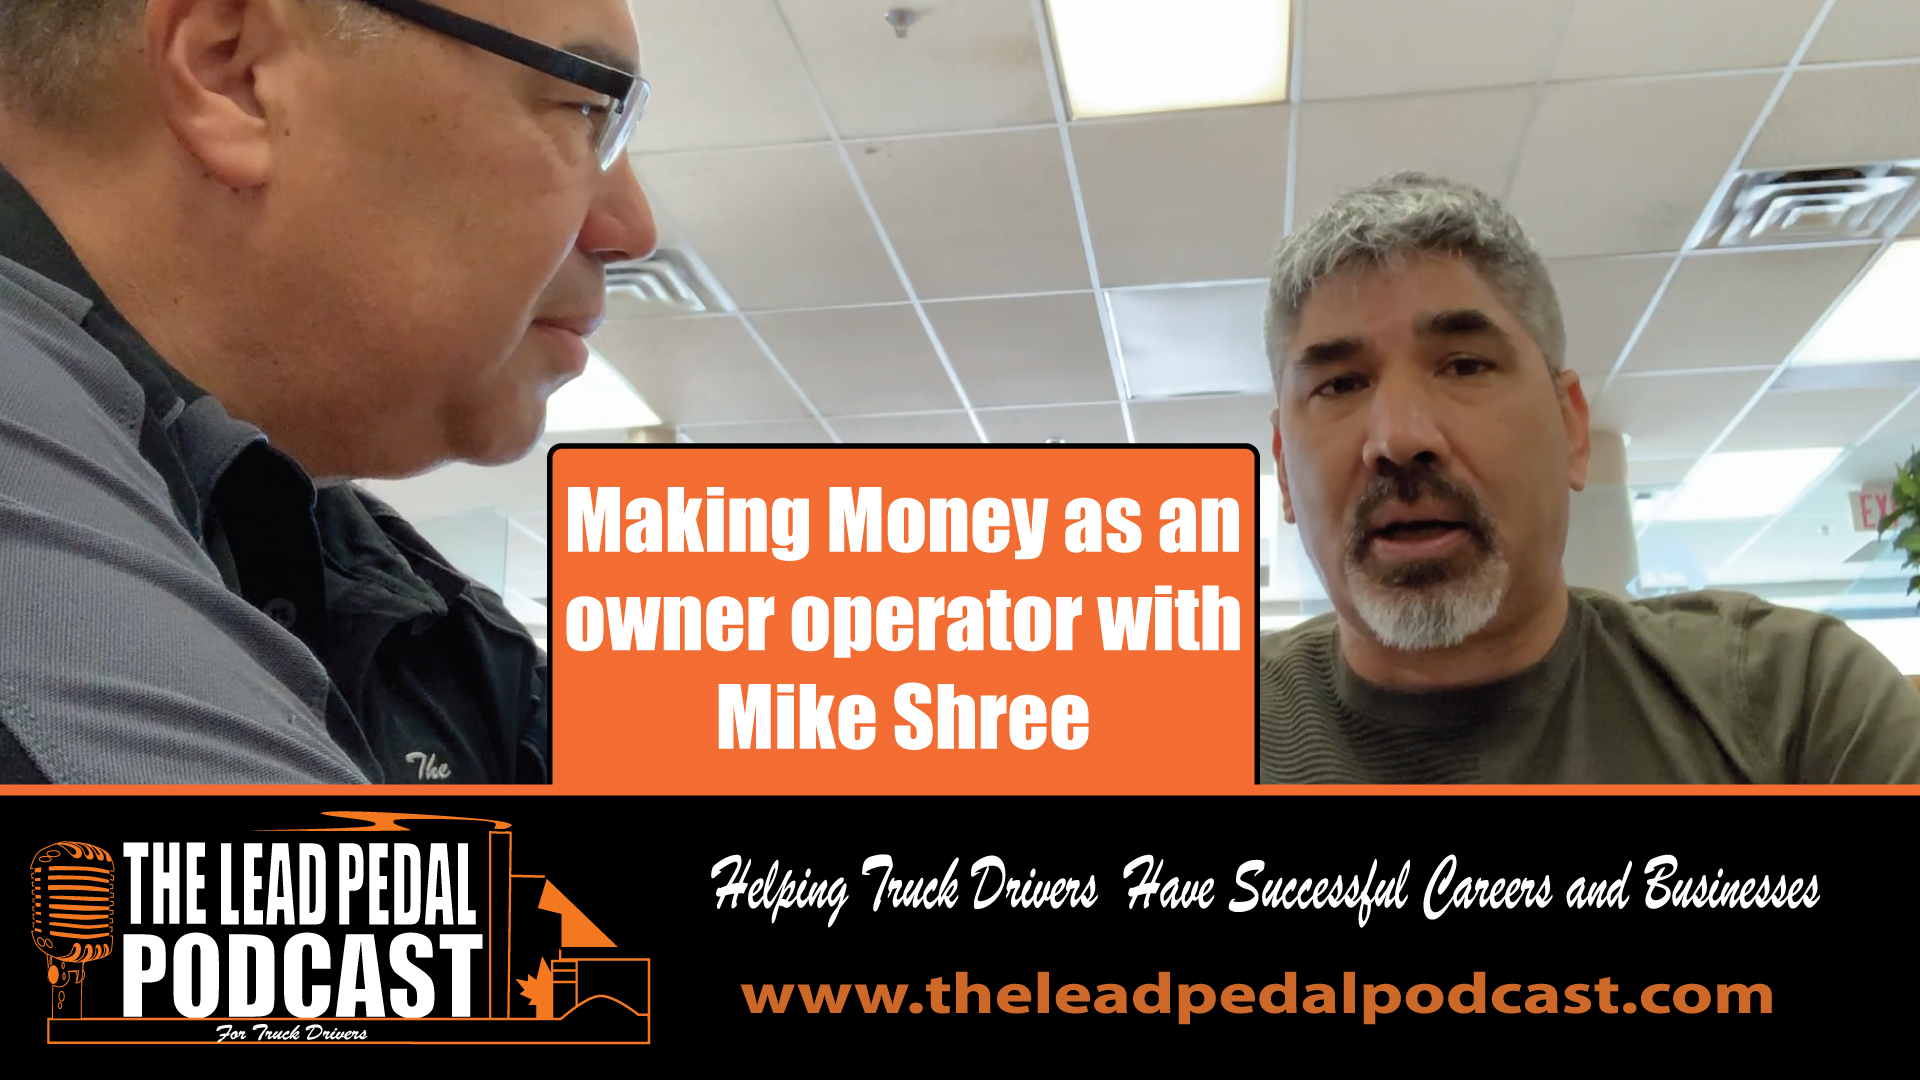 Making money as an owner operator with Mike Shree